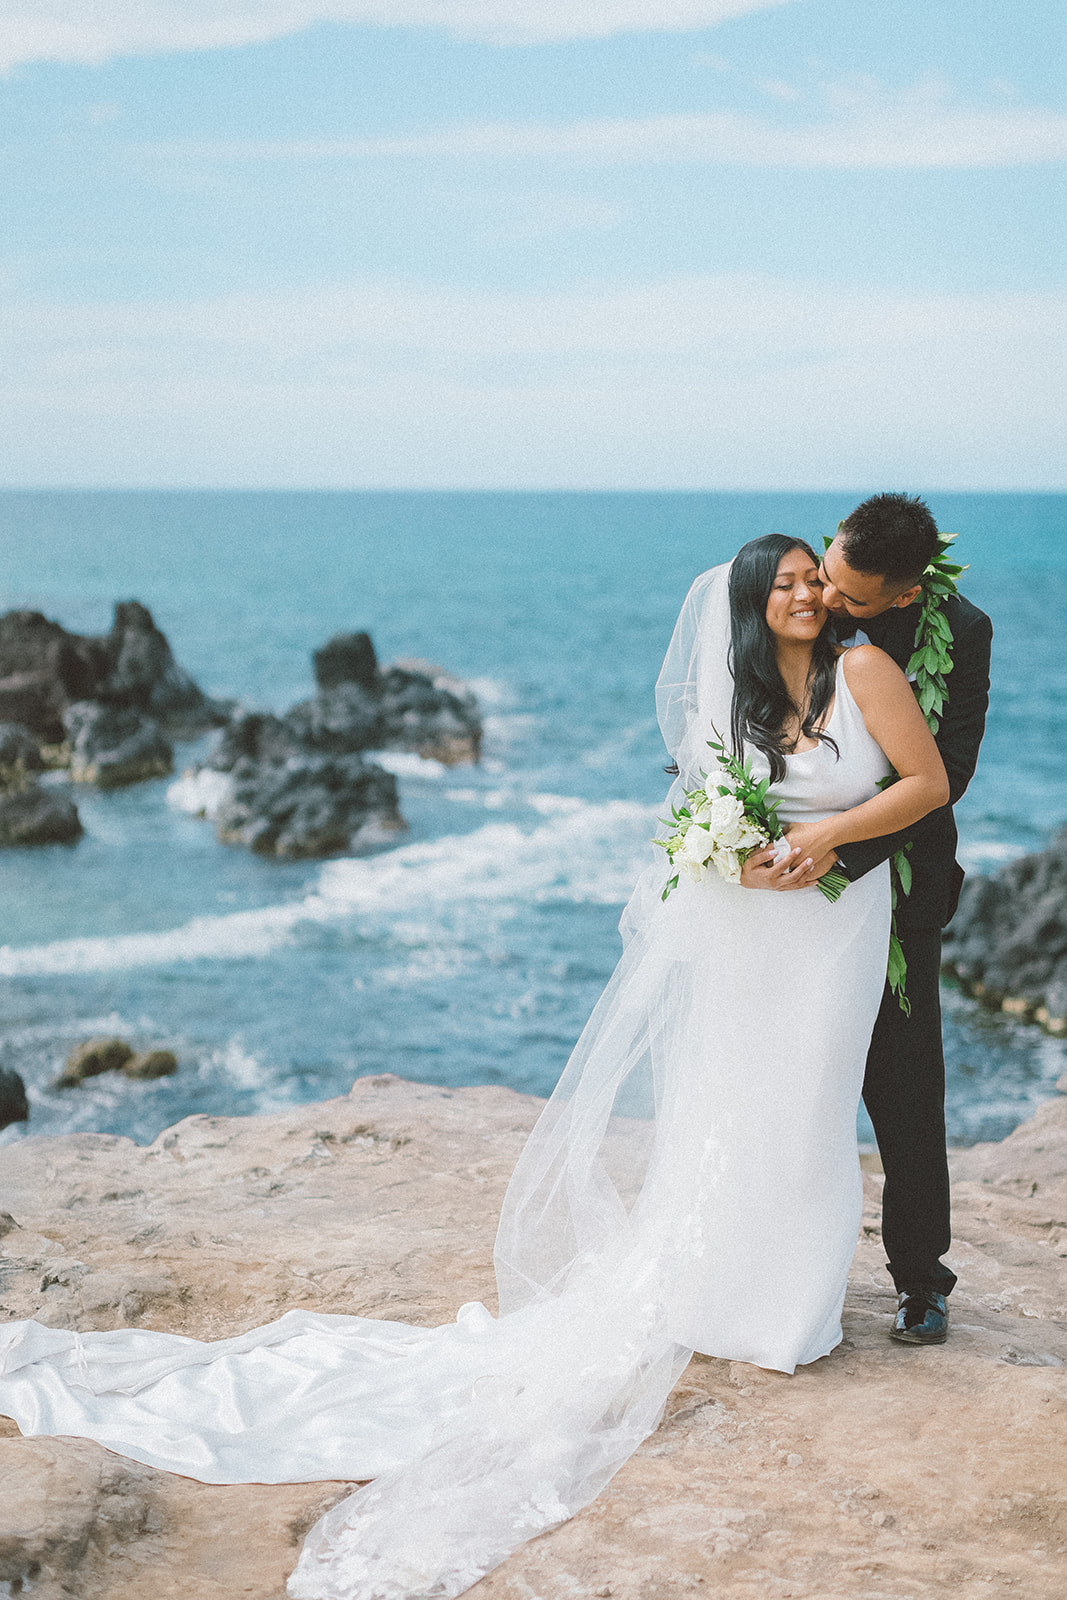 Haiku Mill Luxe Maui Wedding20190625_0181.jpg